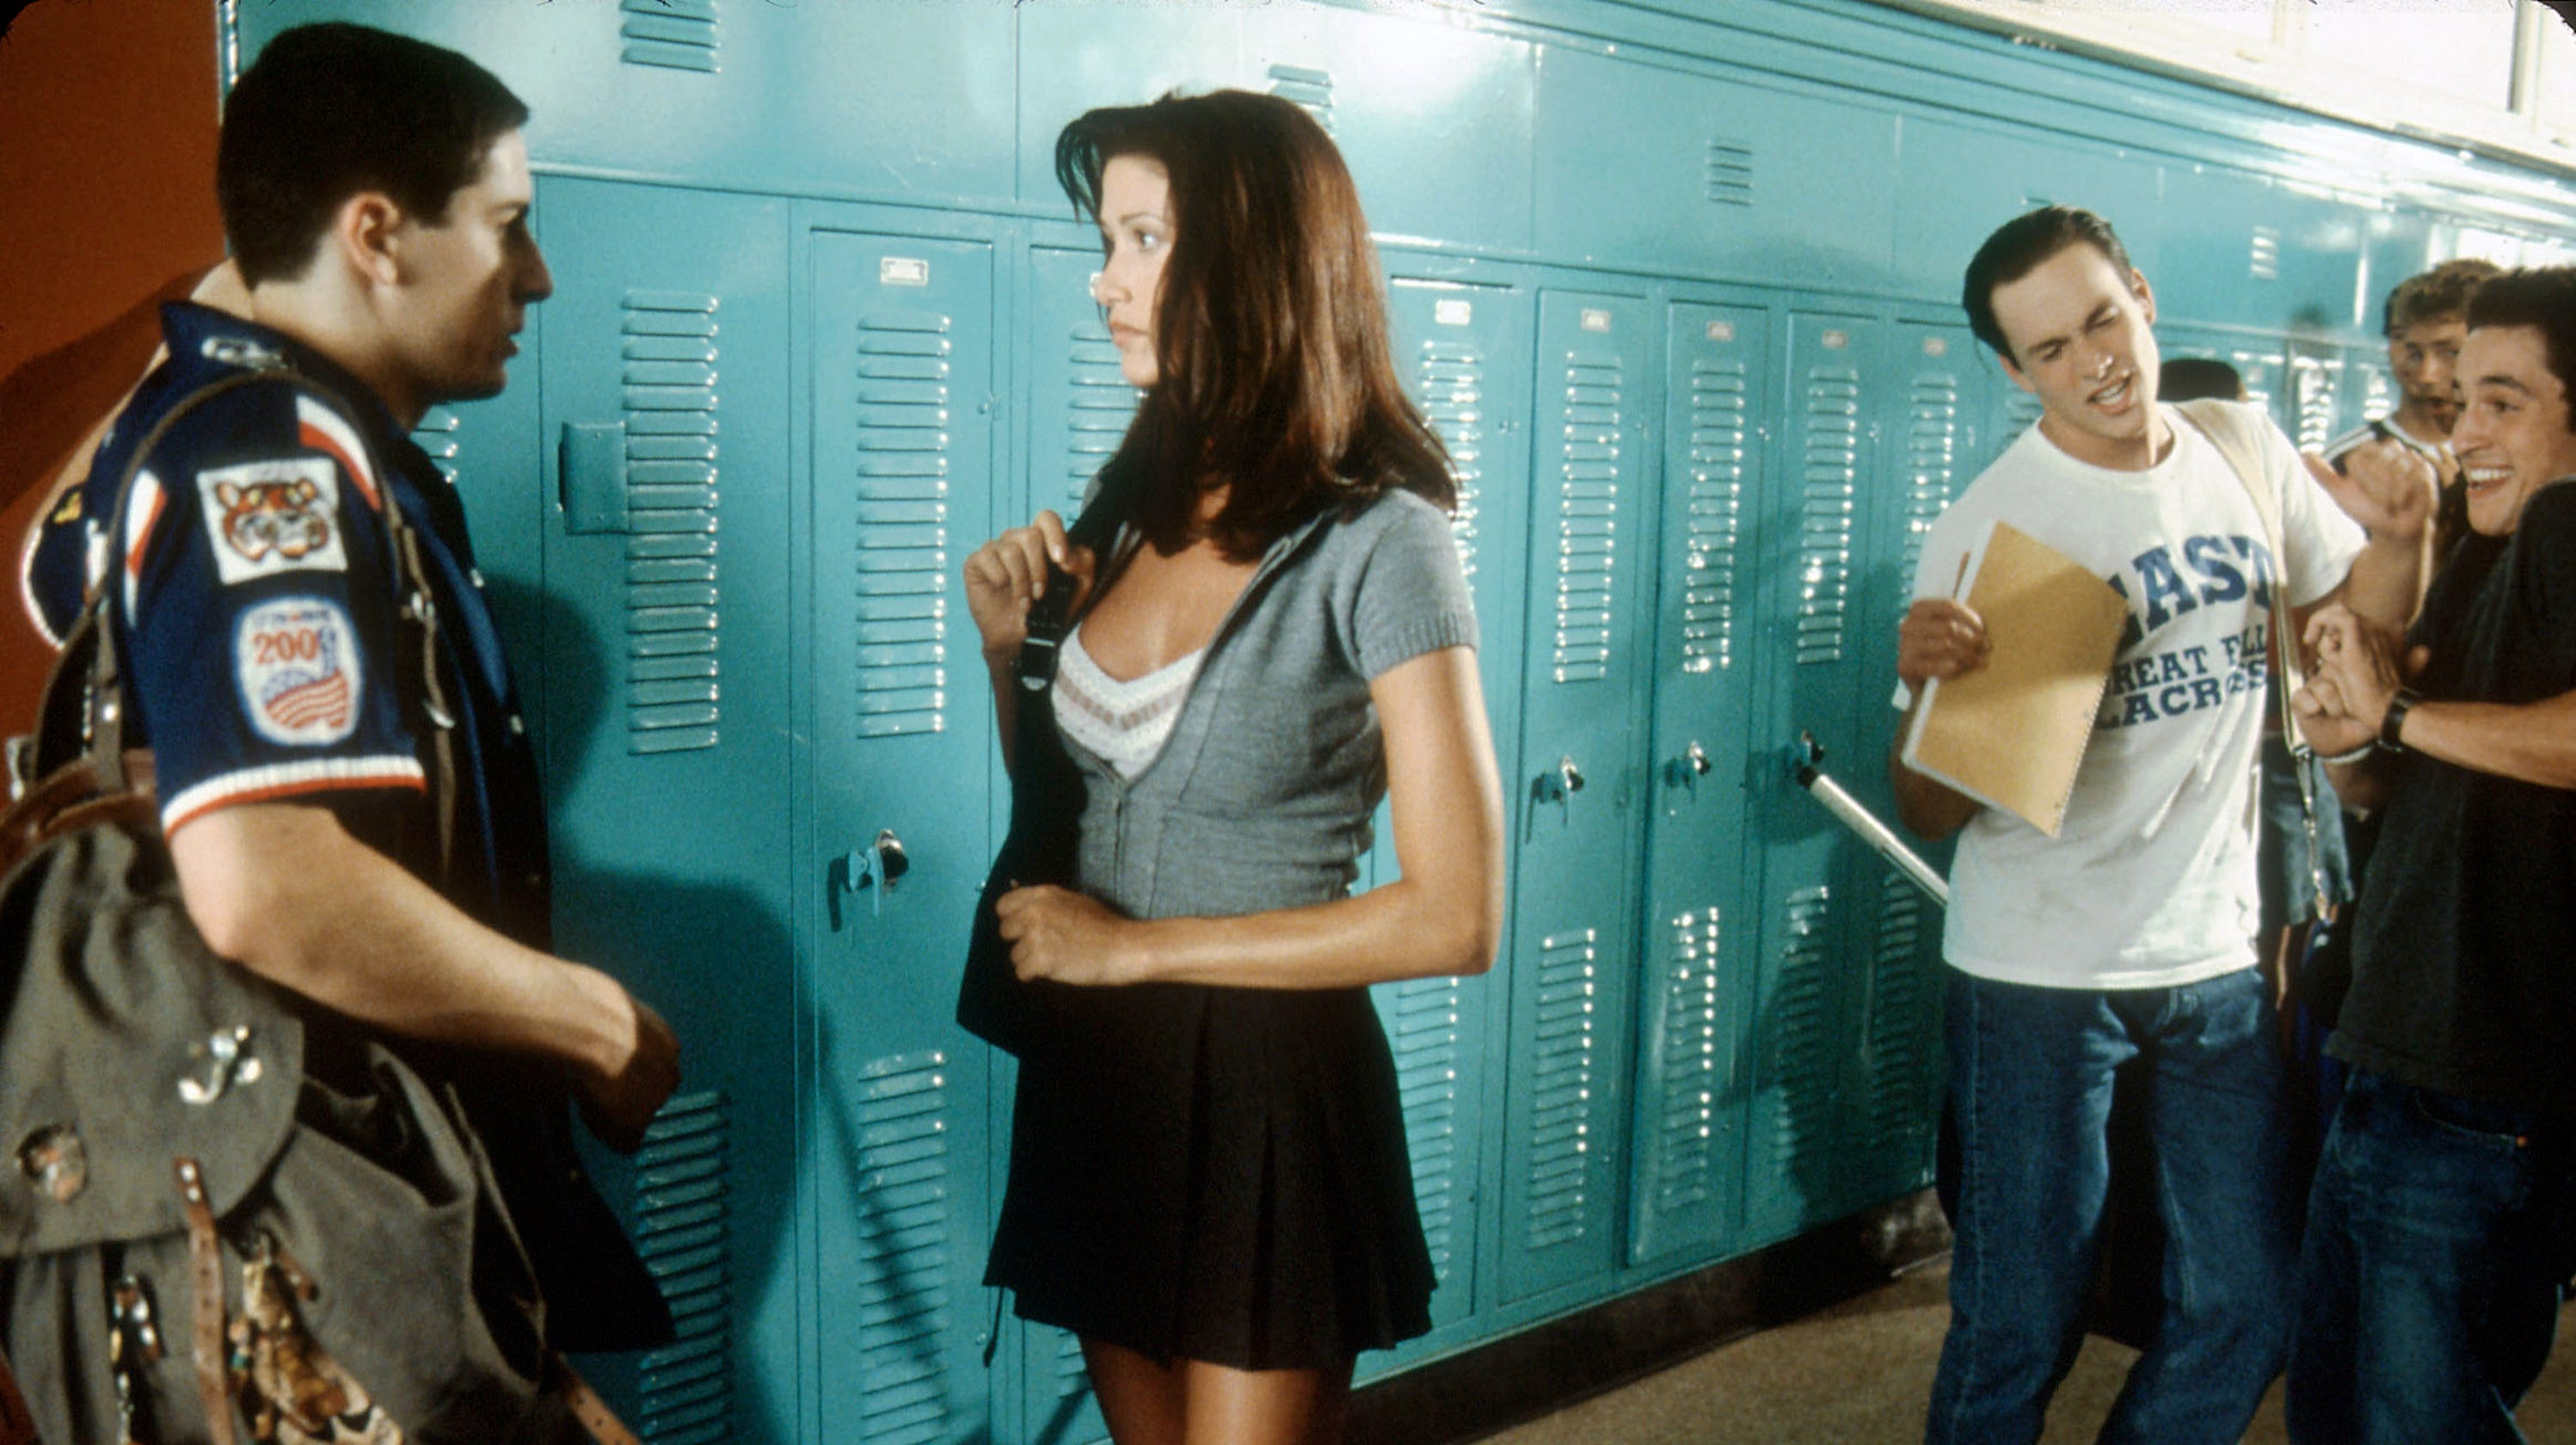 American Pie The Wedding Nude Scenes shannon elizabeth says this 'american pie' scene isn't